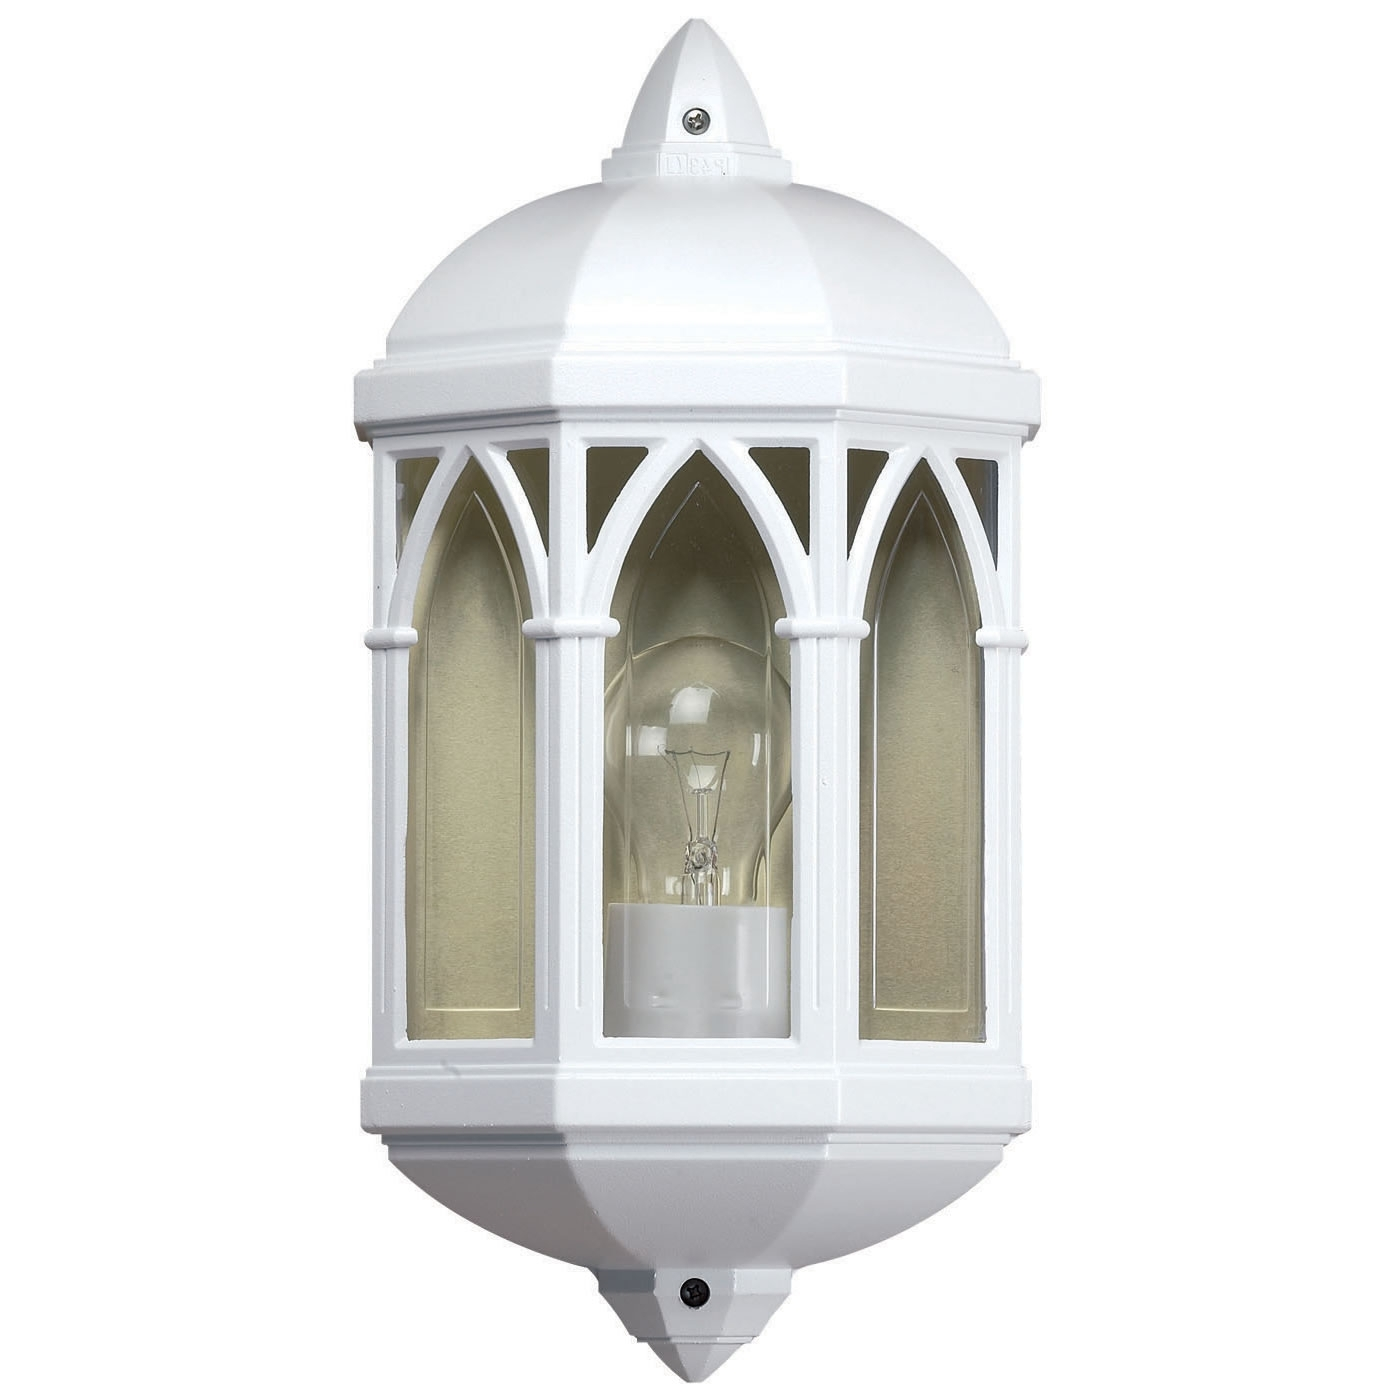 Outdoor Lighting: Inspiring White Outdoor Light Fixtures White With Regard To Most Recent Outdoor Ceiling Lights At Amazon (View 14 of 20)